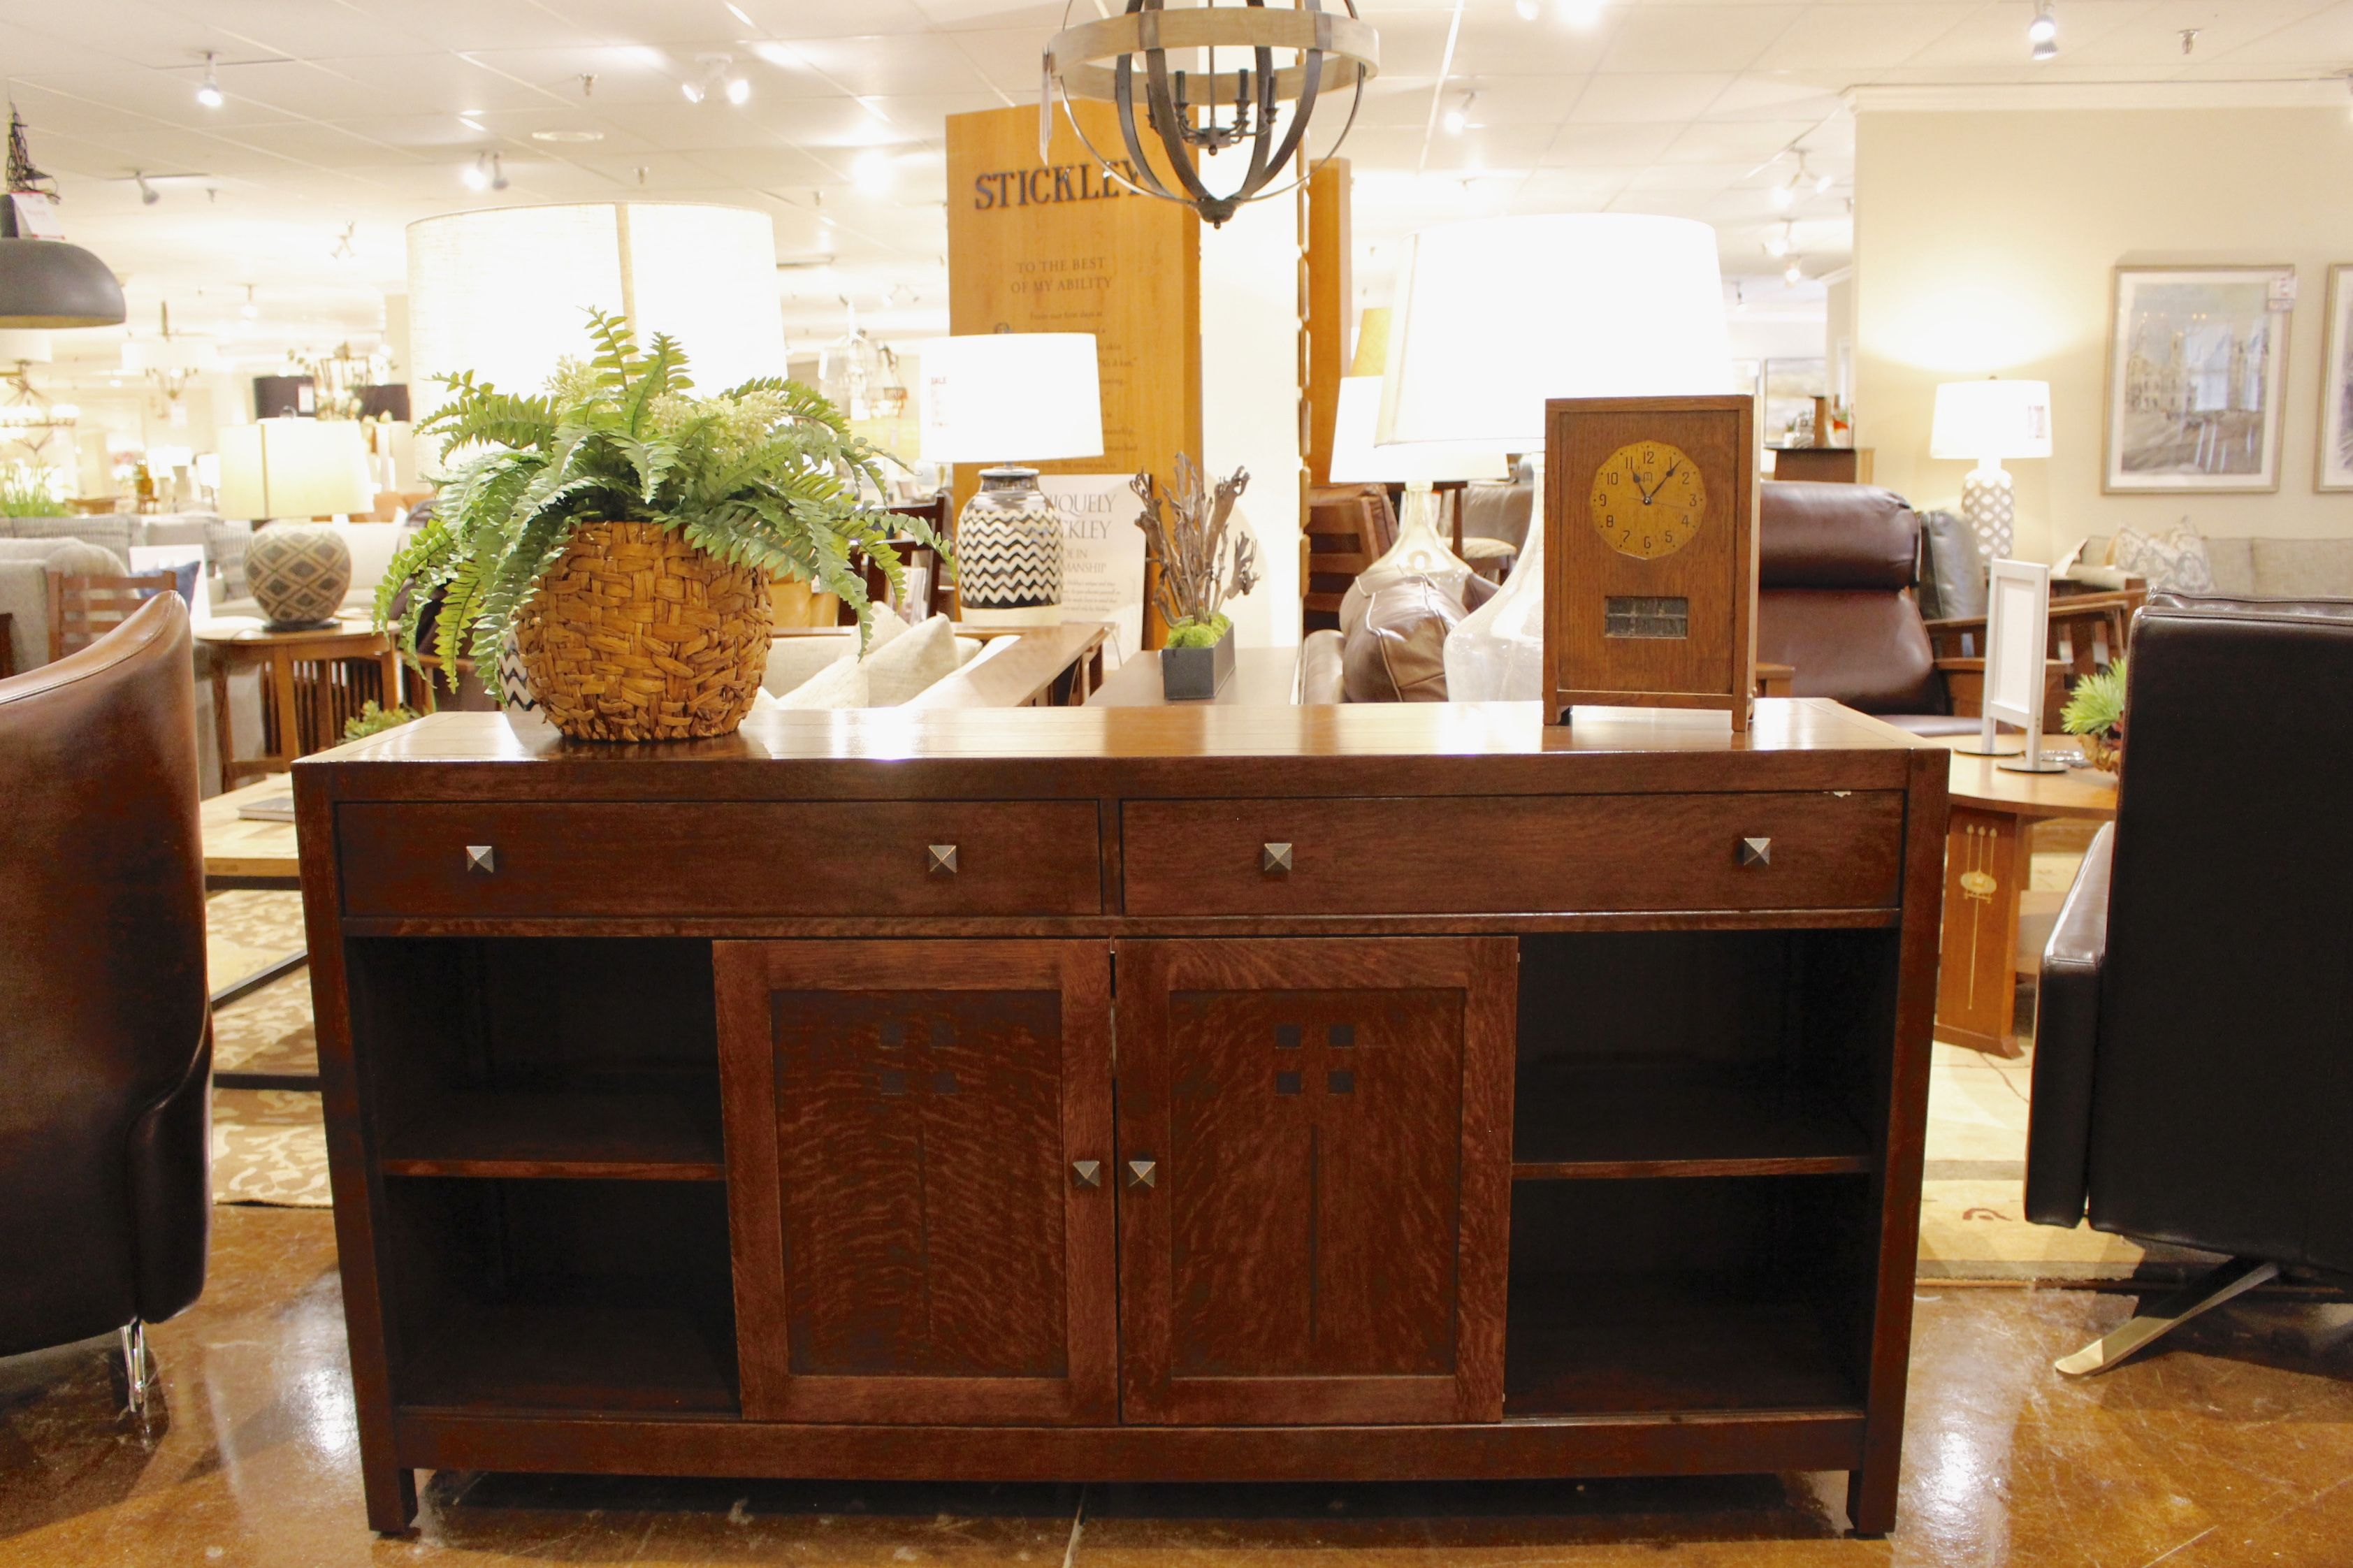 Stickley Buffet Table Stickley Furniture in Pinterest